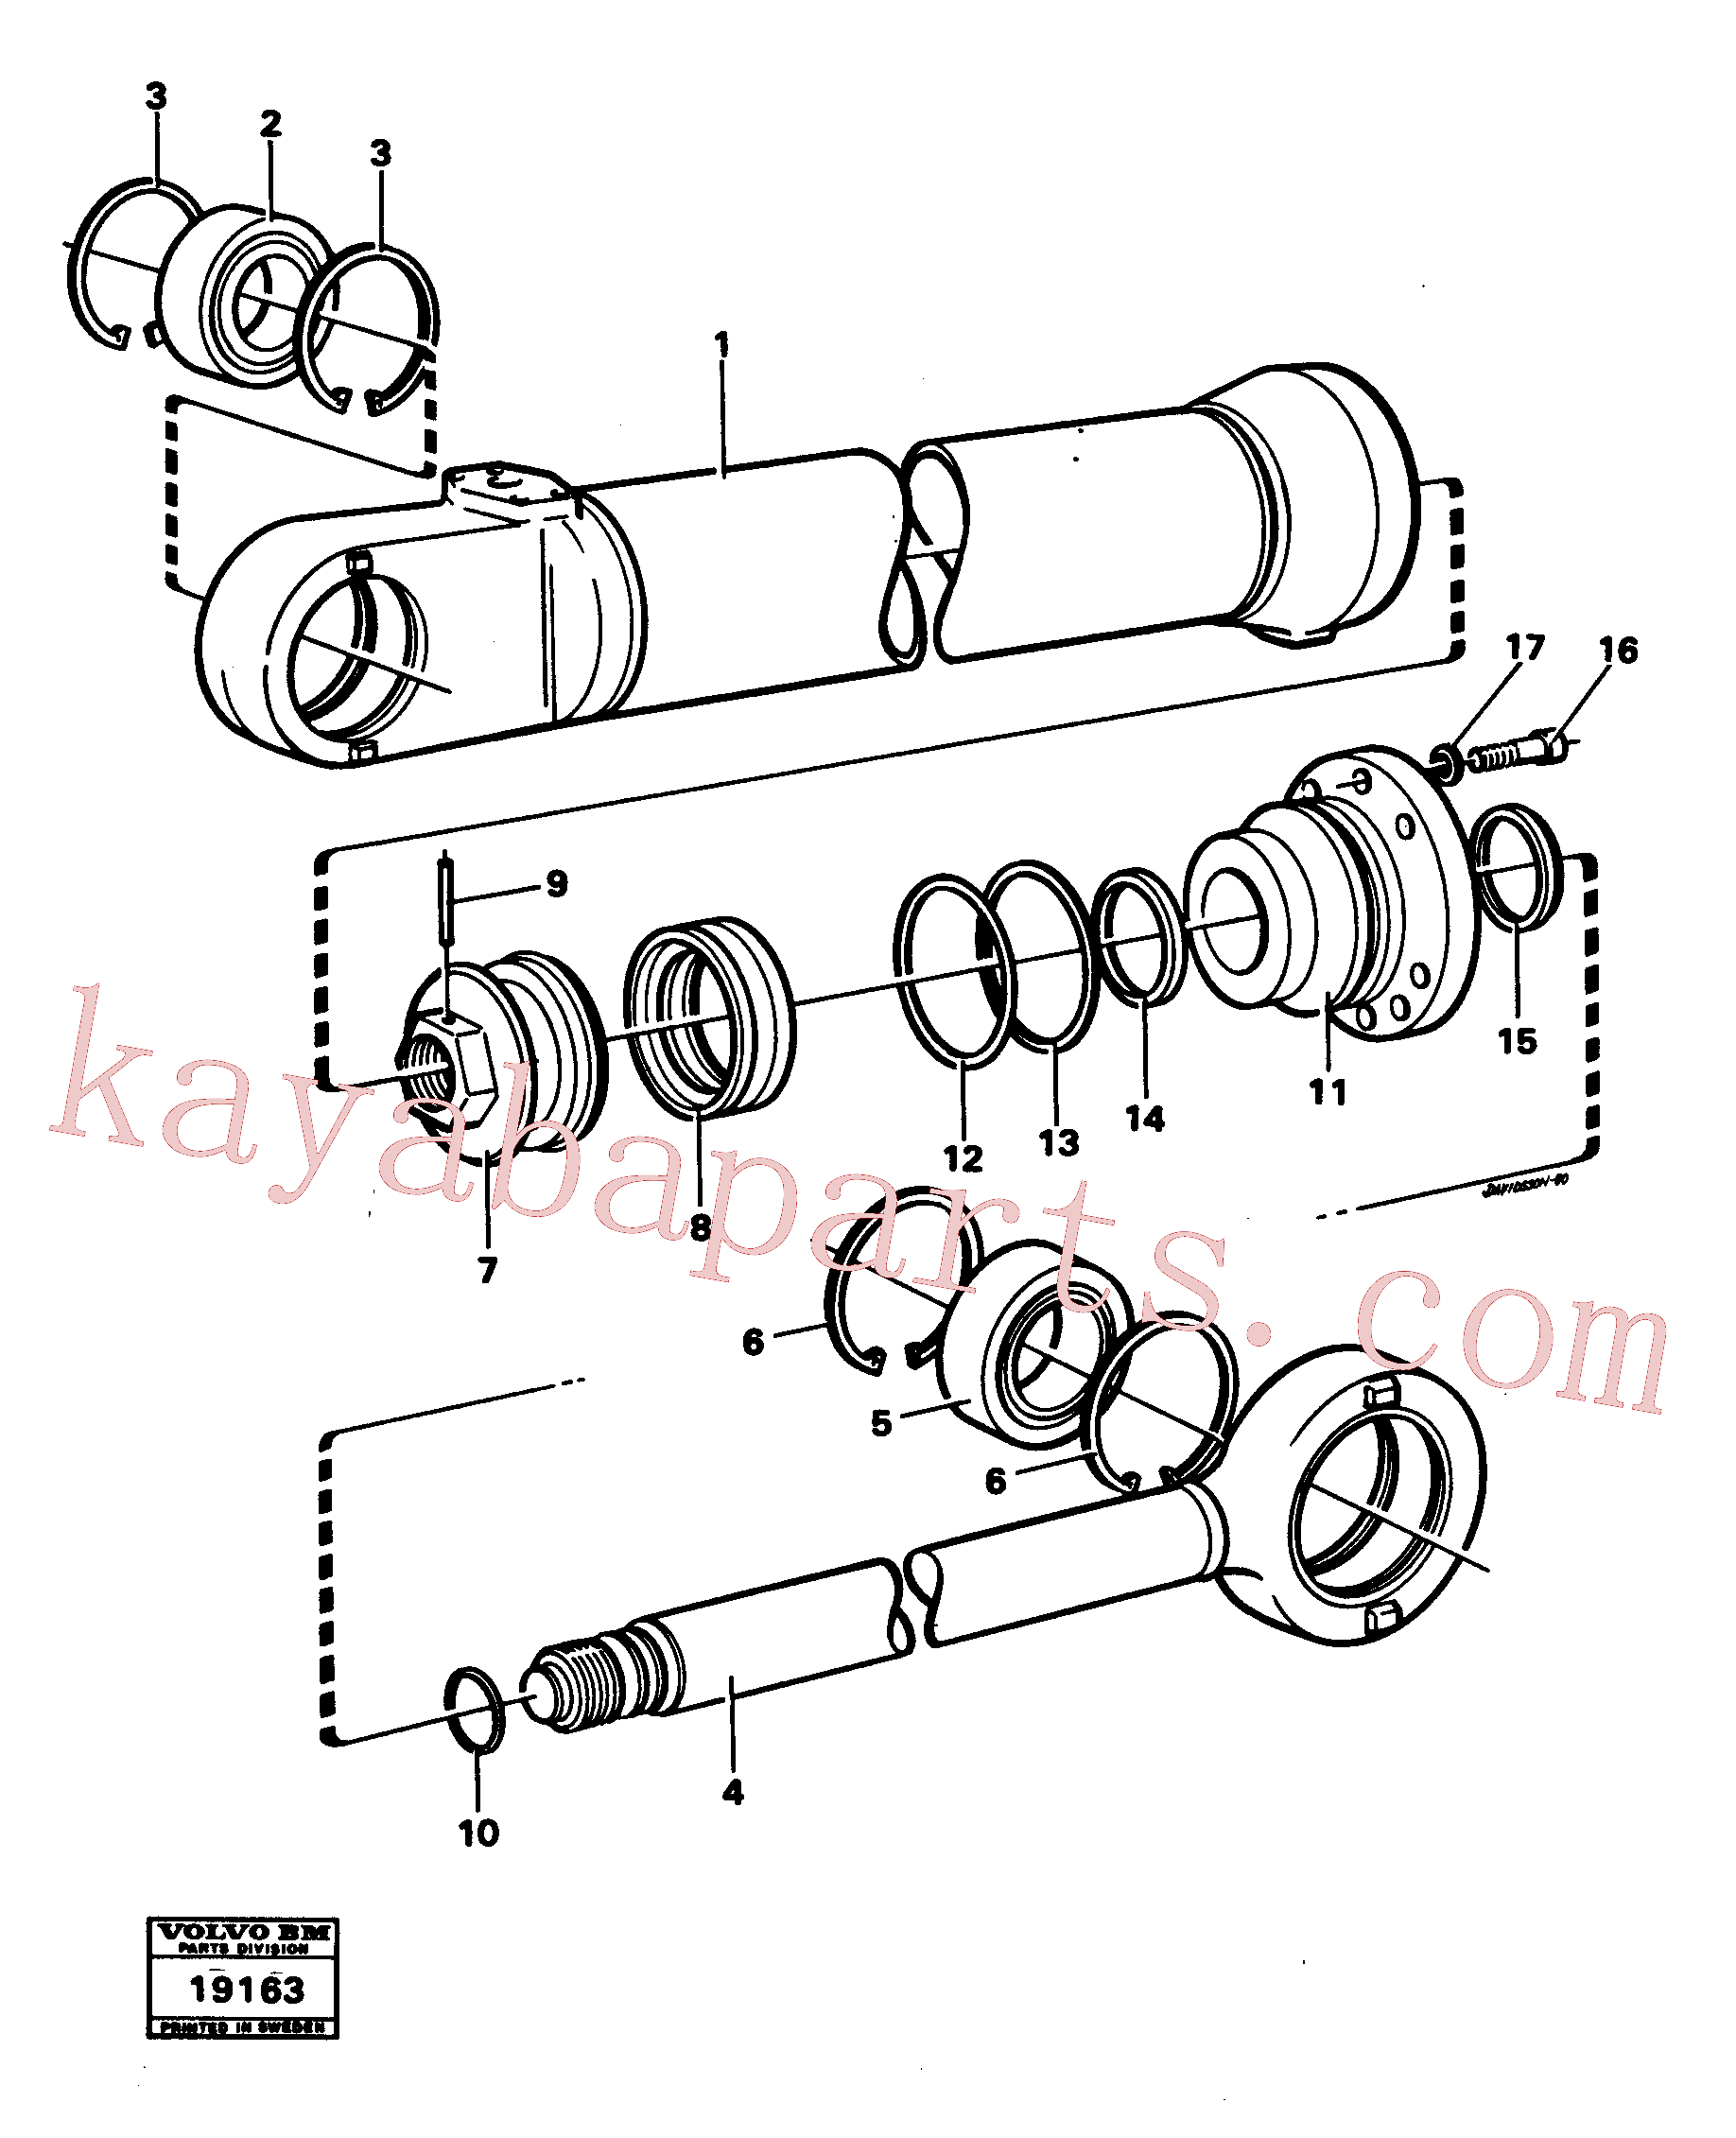 VOE11005193 for Volvo Hydraulic cylinder lifting(19163 assembly)